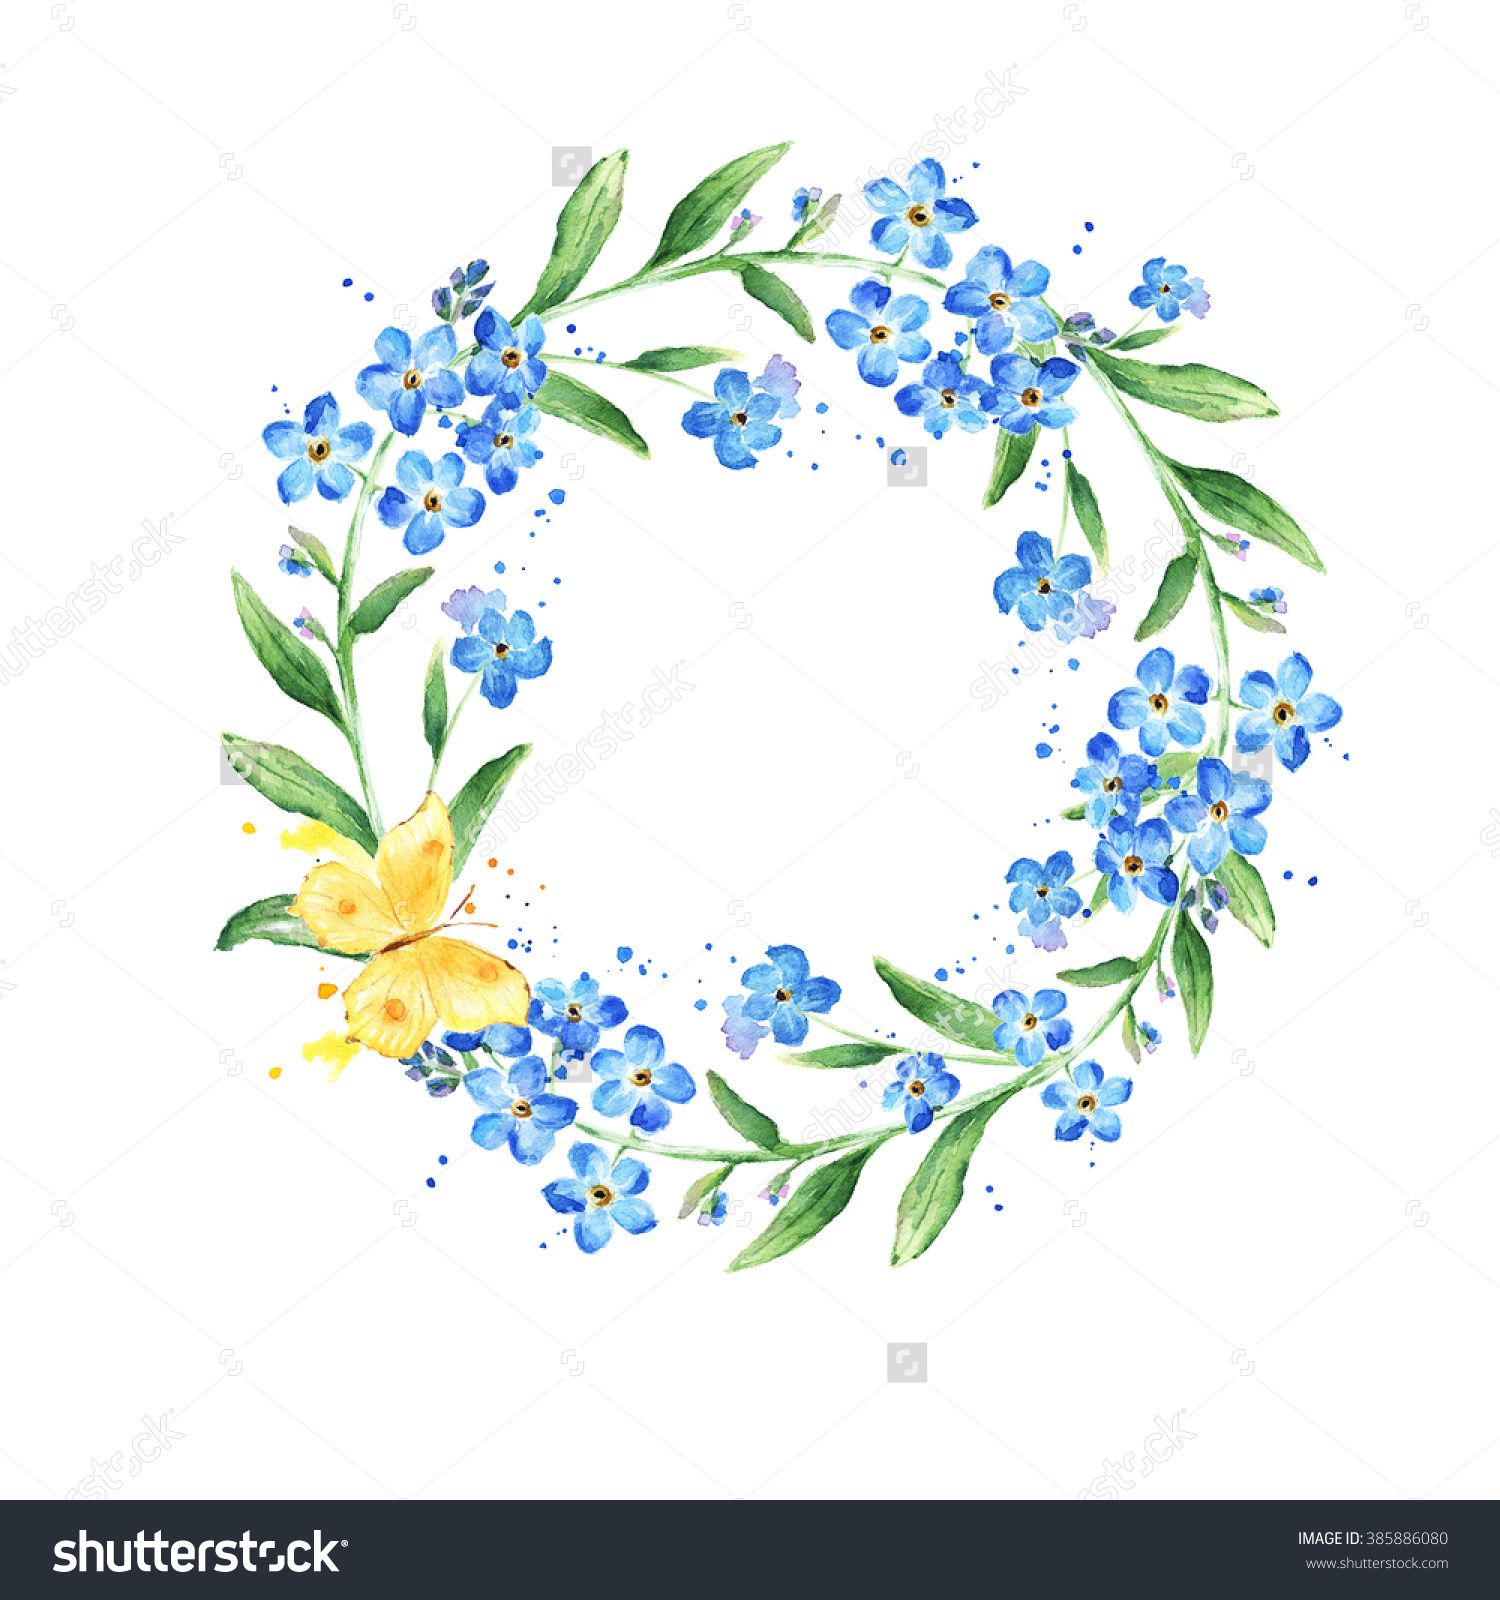 Stock photo watercolor forget me not wreath natural round frame with floral forget me not flower round frame watercolor illustration copy space buy this stock illustration on shutterstock find other images izmirmasajfo Gallery